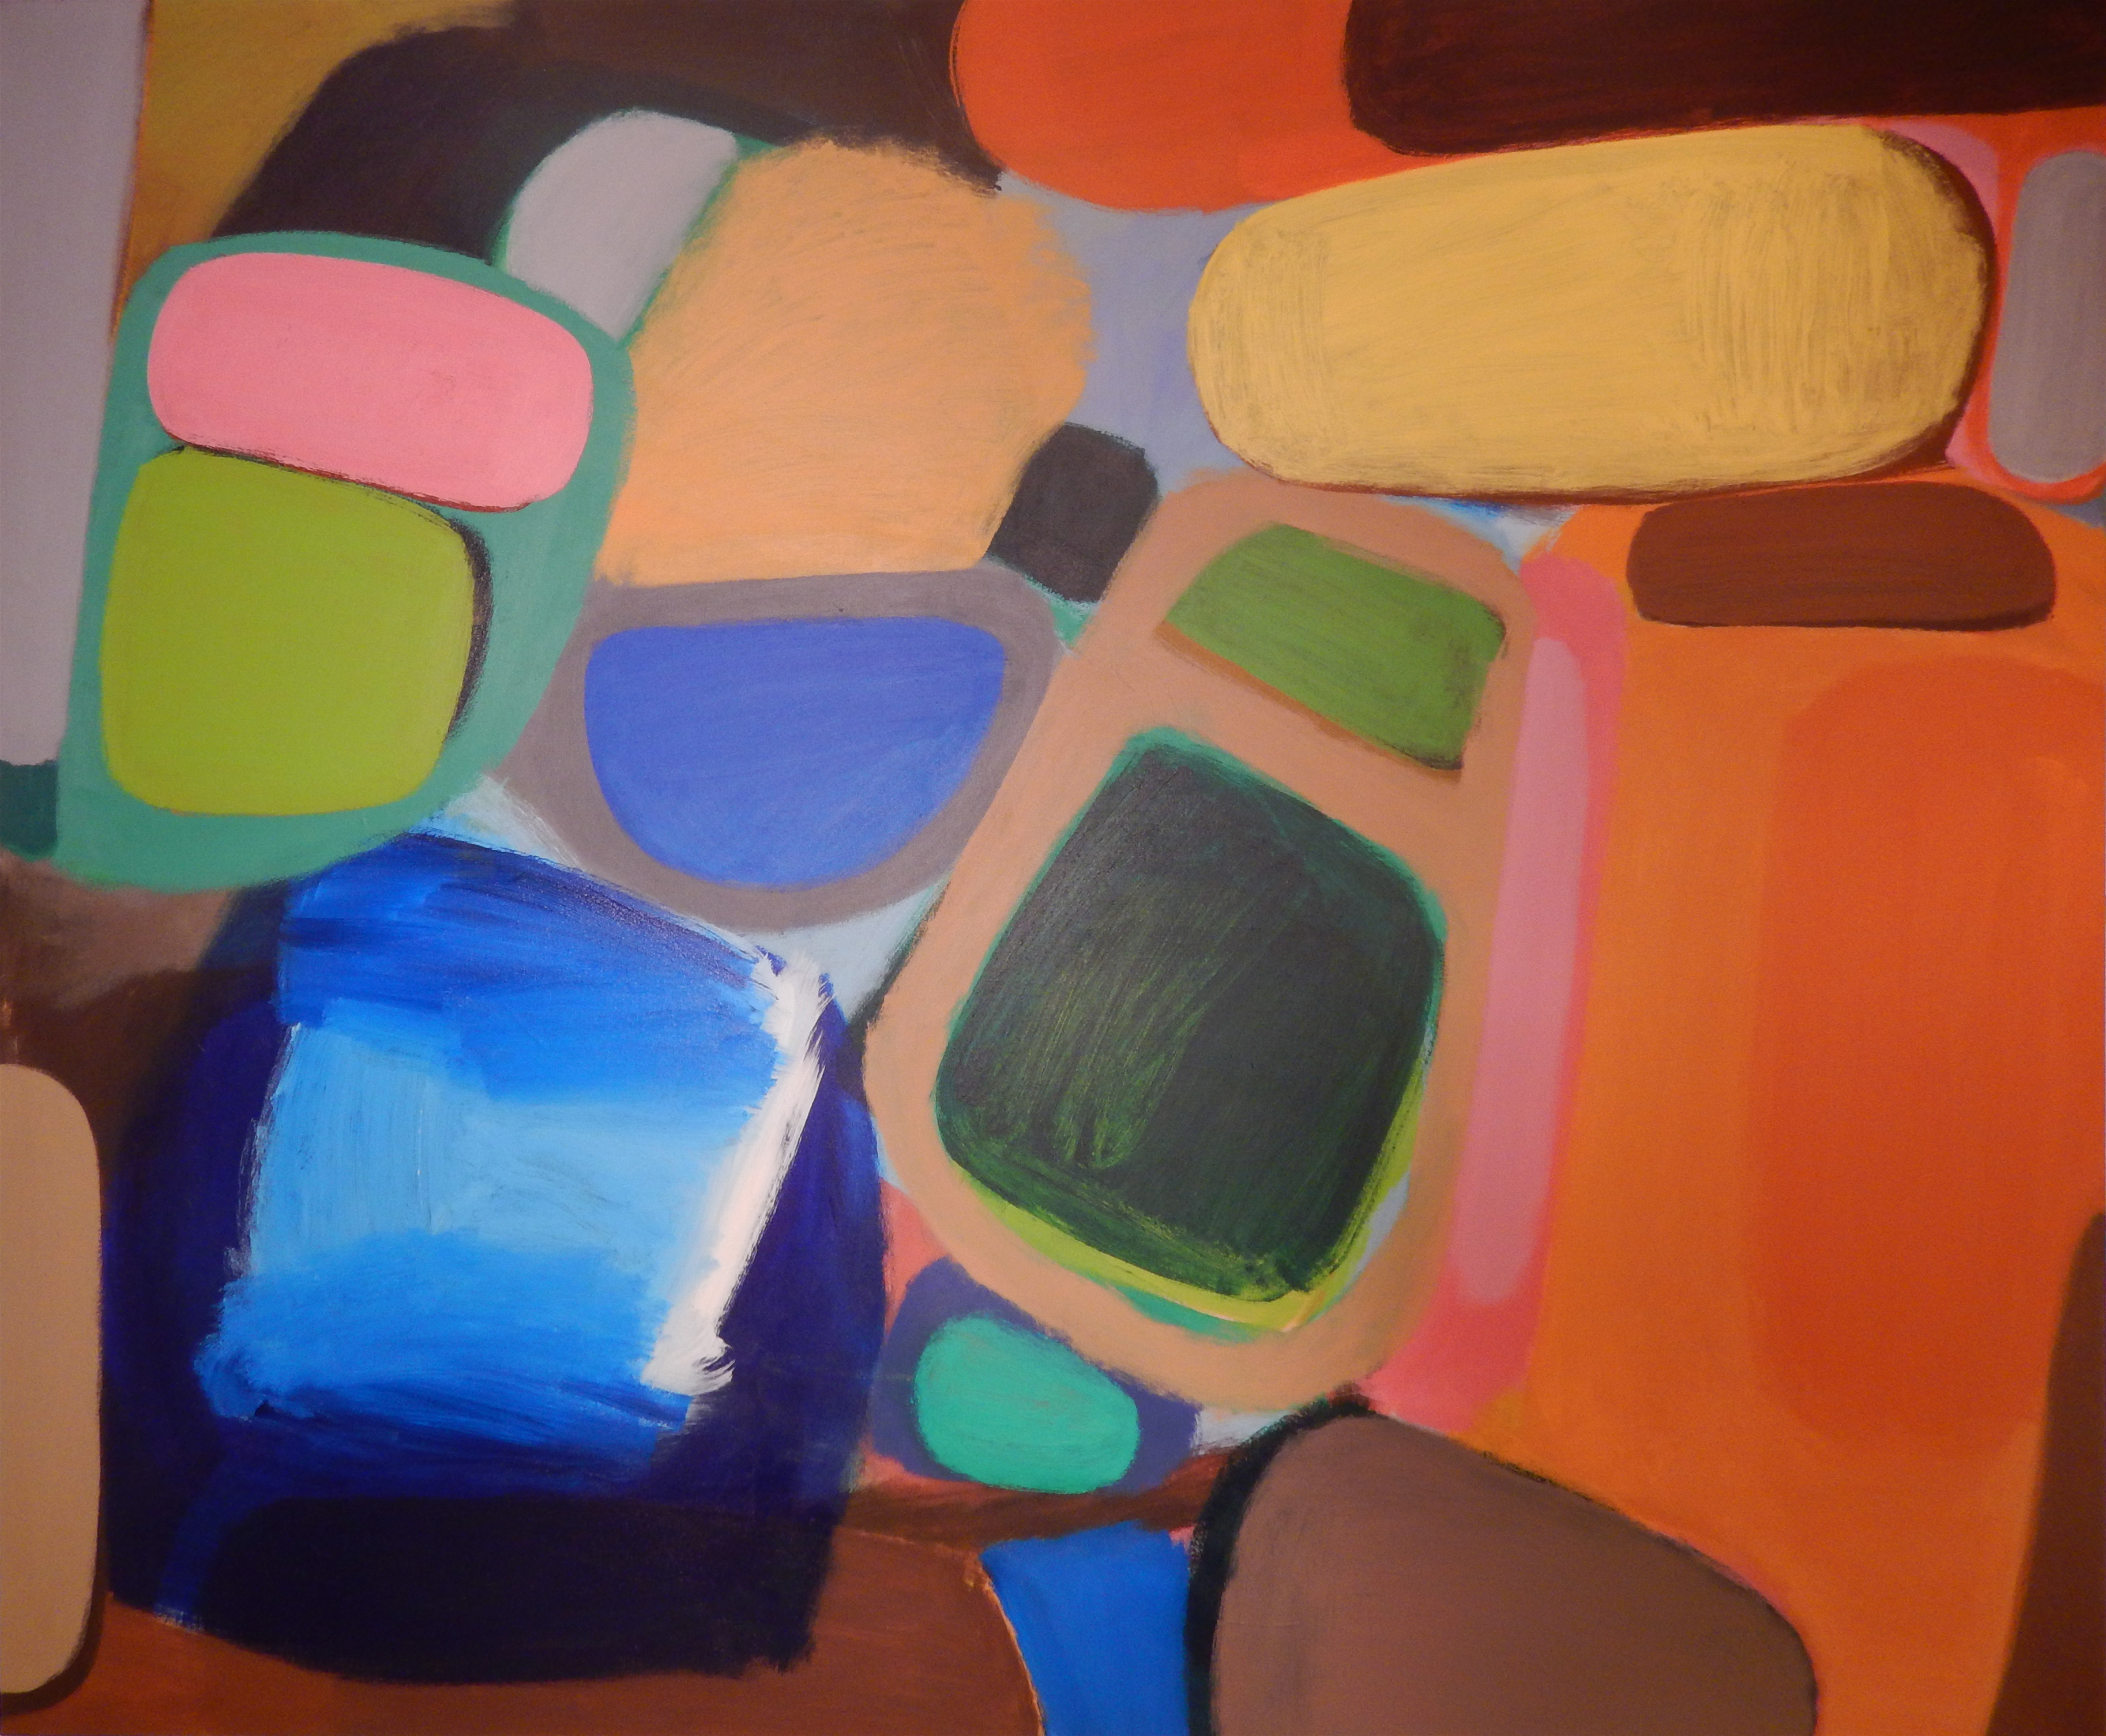 Untitled 2202 artwork by Mark Sharp - art listed for sale on Artplode